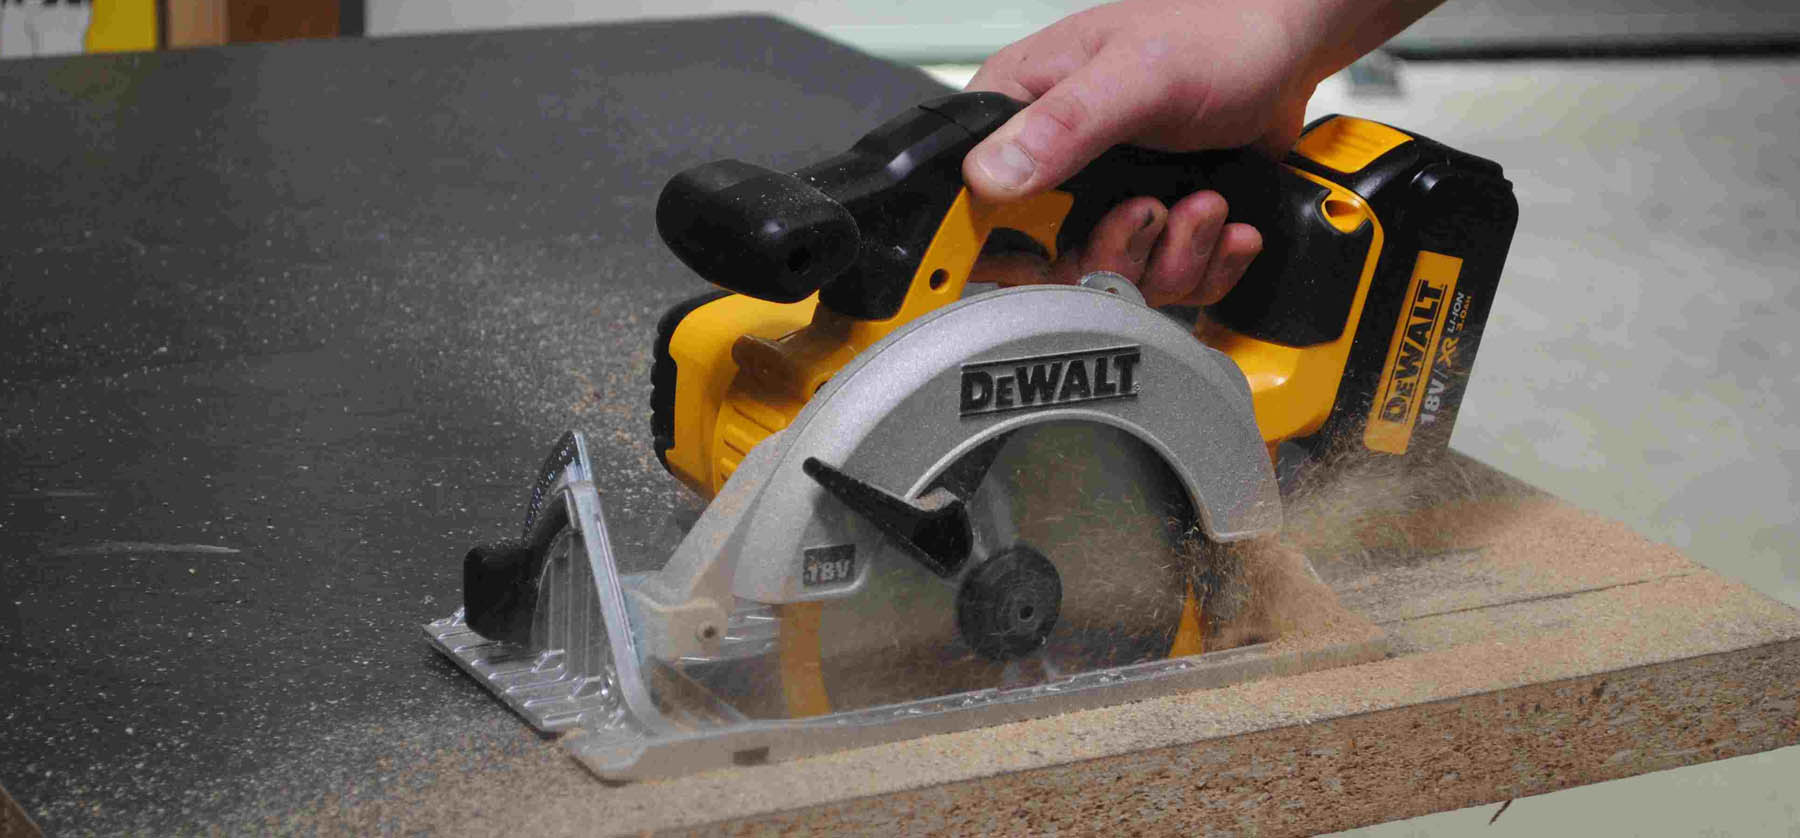 battery powered circular saw is essential tool for woodworking beginners